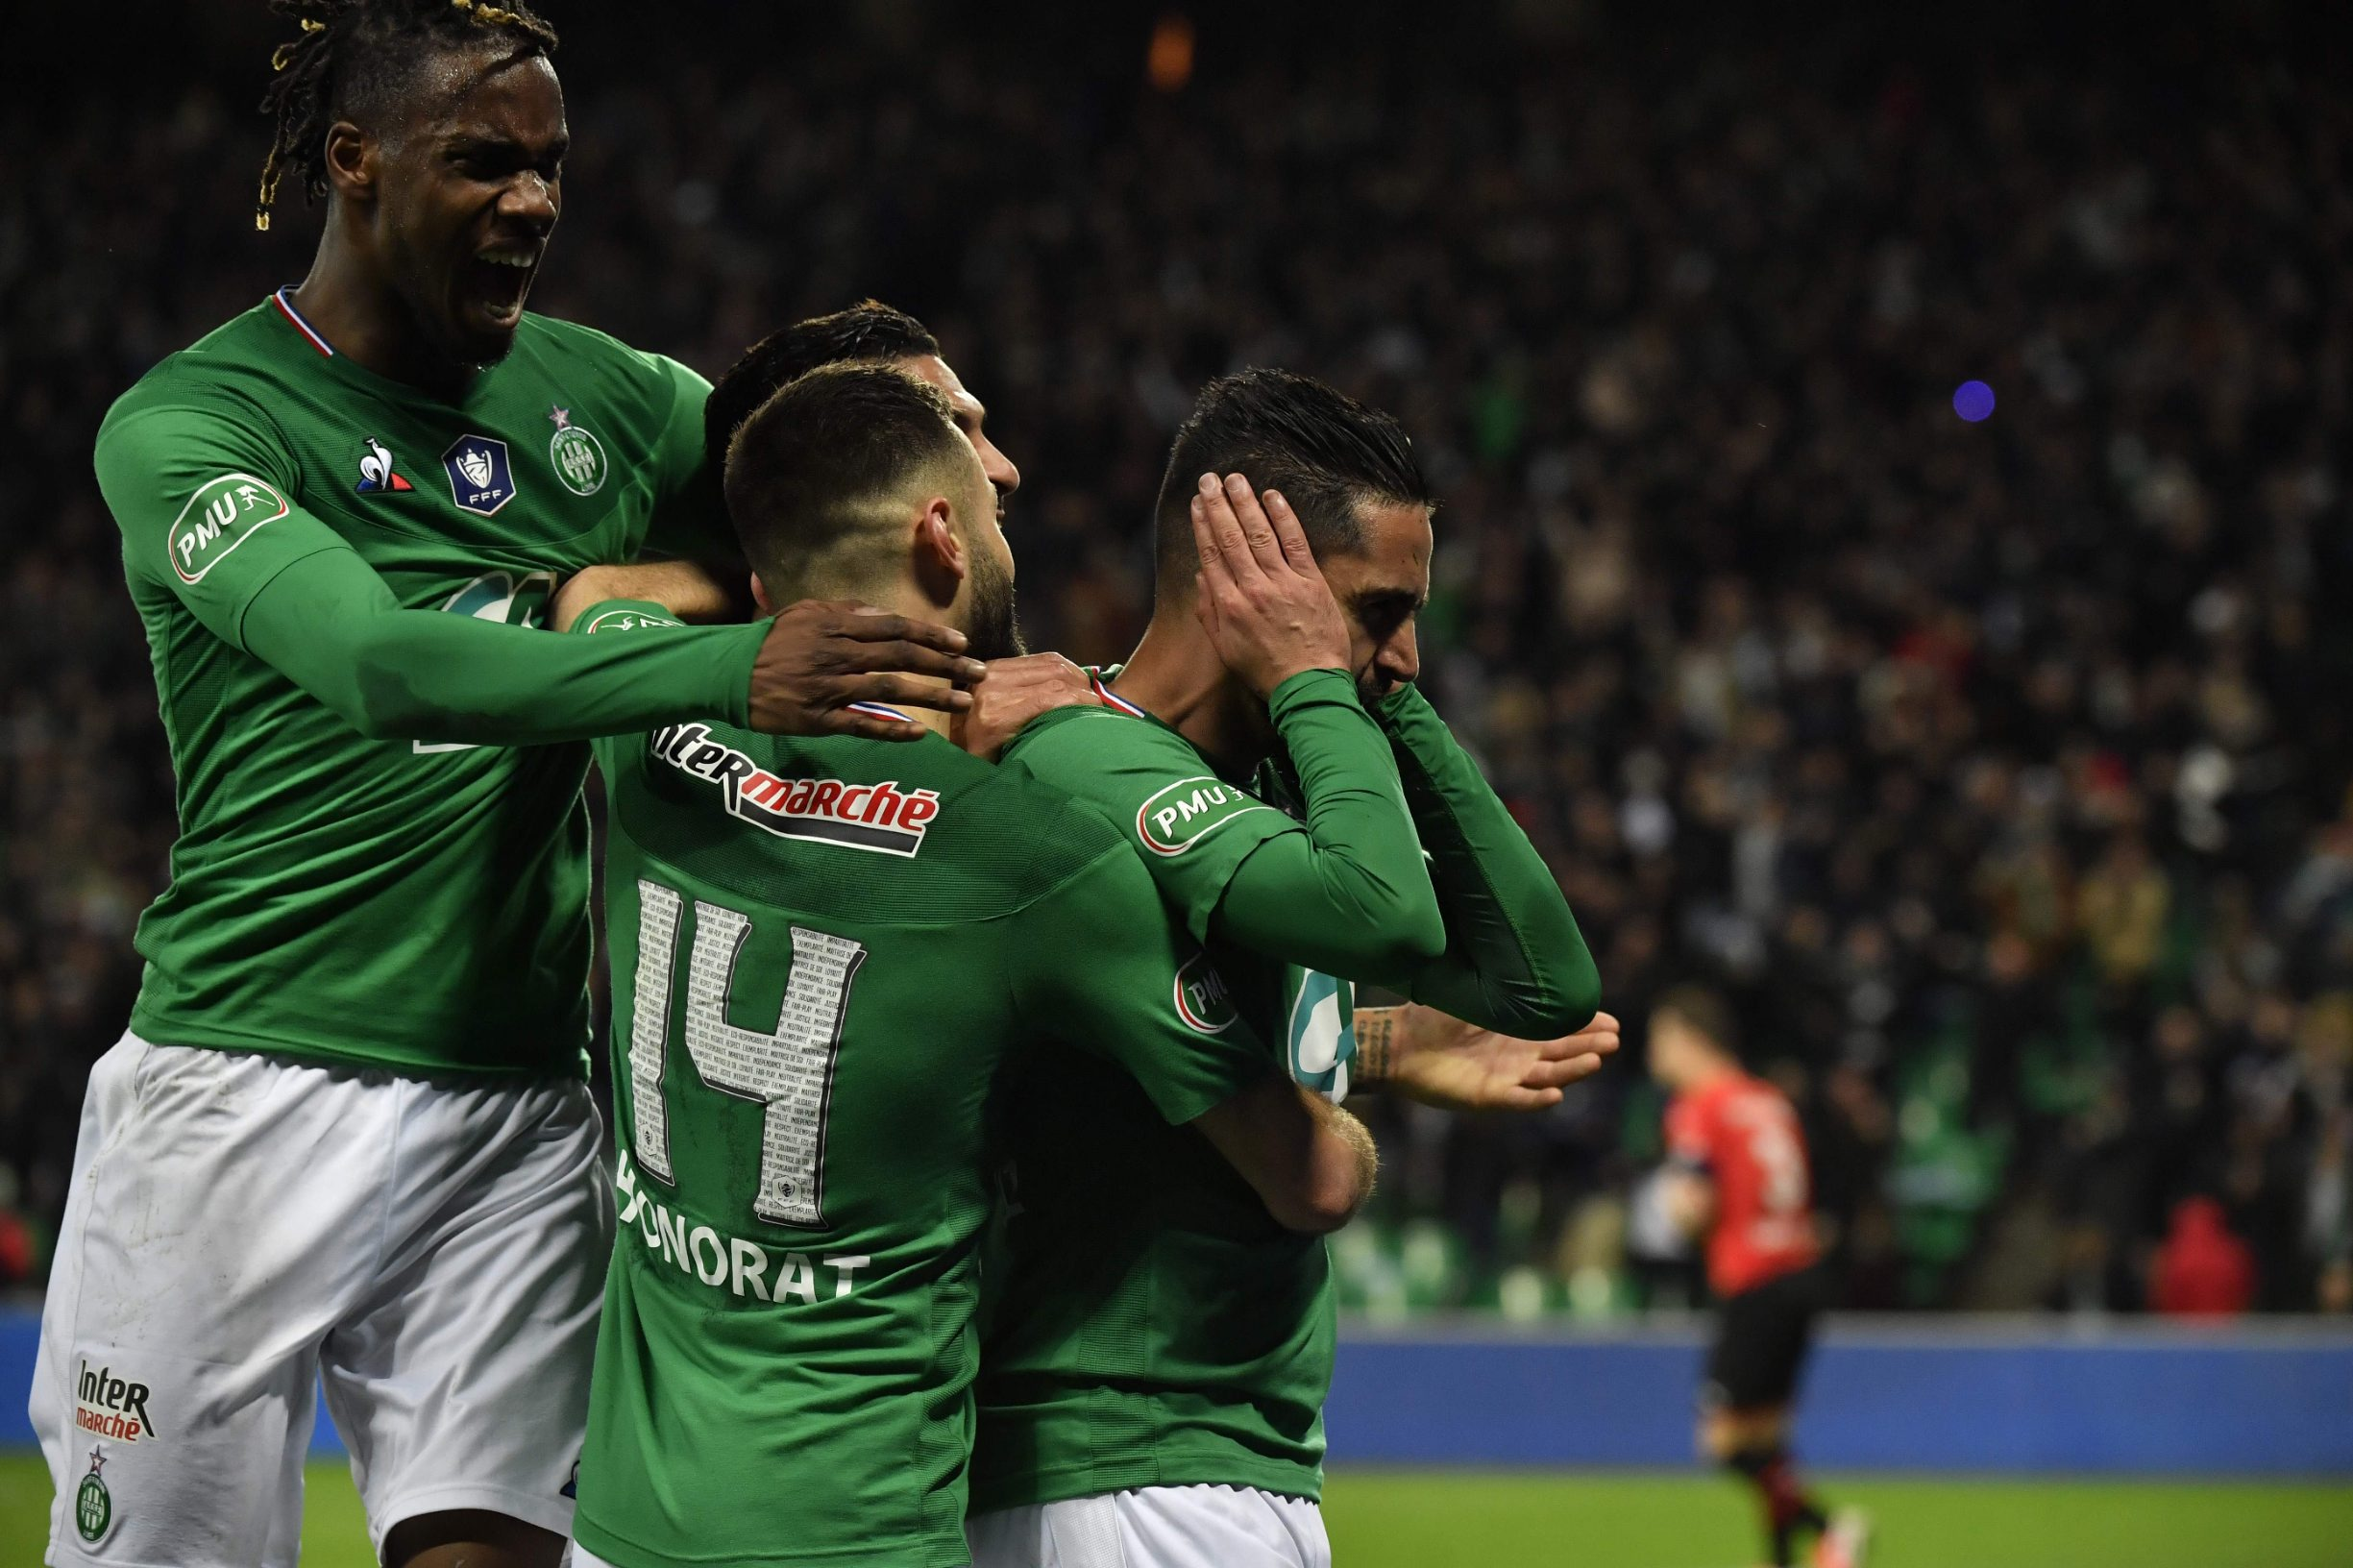 Saint-Etienne's Algerian midfielder Ryad Boudebouz (R) is congratuled by teamates after scoring a goal during the French Cup semi-final match between AS Saint-Etienne (ASSE) and Stade Rennais FC (Rennes) on March 5, 2020, at the Geoffroy Guichard stadium in Saint-Etienne, central France. (Photo by PHILIPPE DESMAZES / AFP)